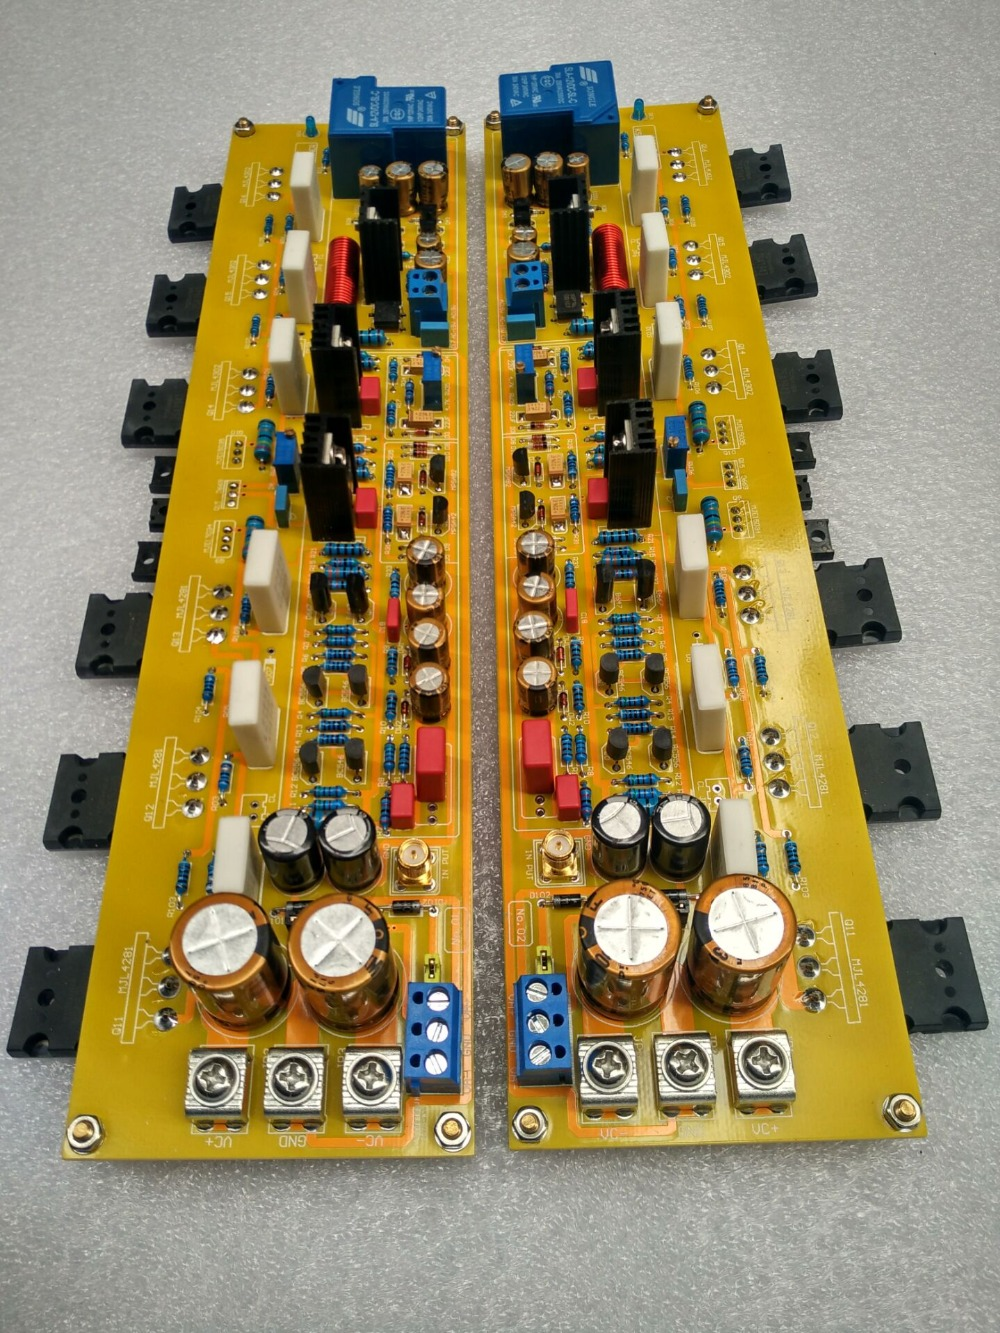 KRELL KSA50 50W 2SC5200 / 2SA1943 + 2SC2073 / 2SA940 + 2SC5171 / Power amplifier tube A pure power amplifier board